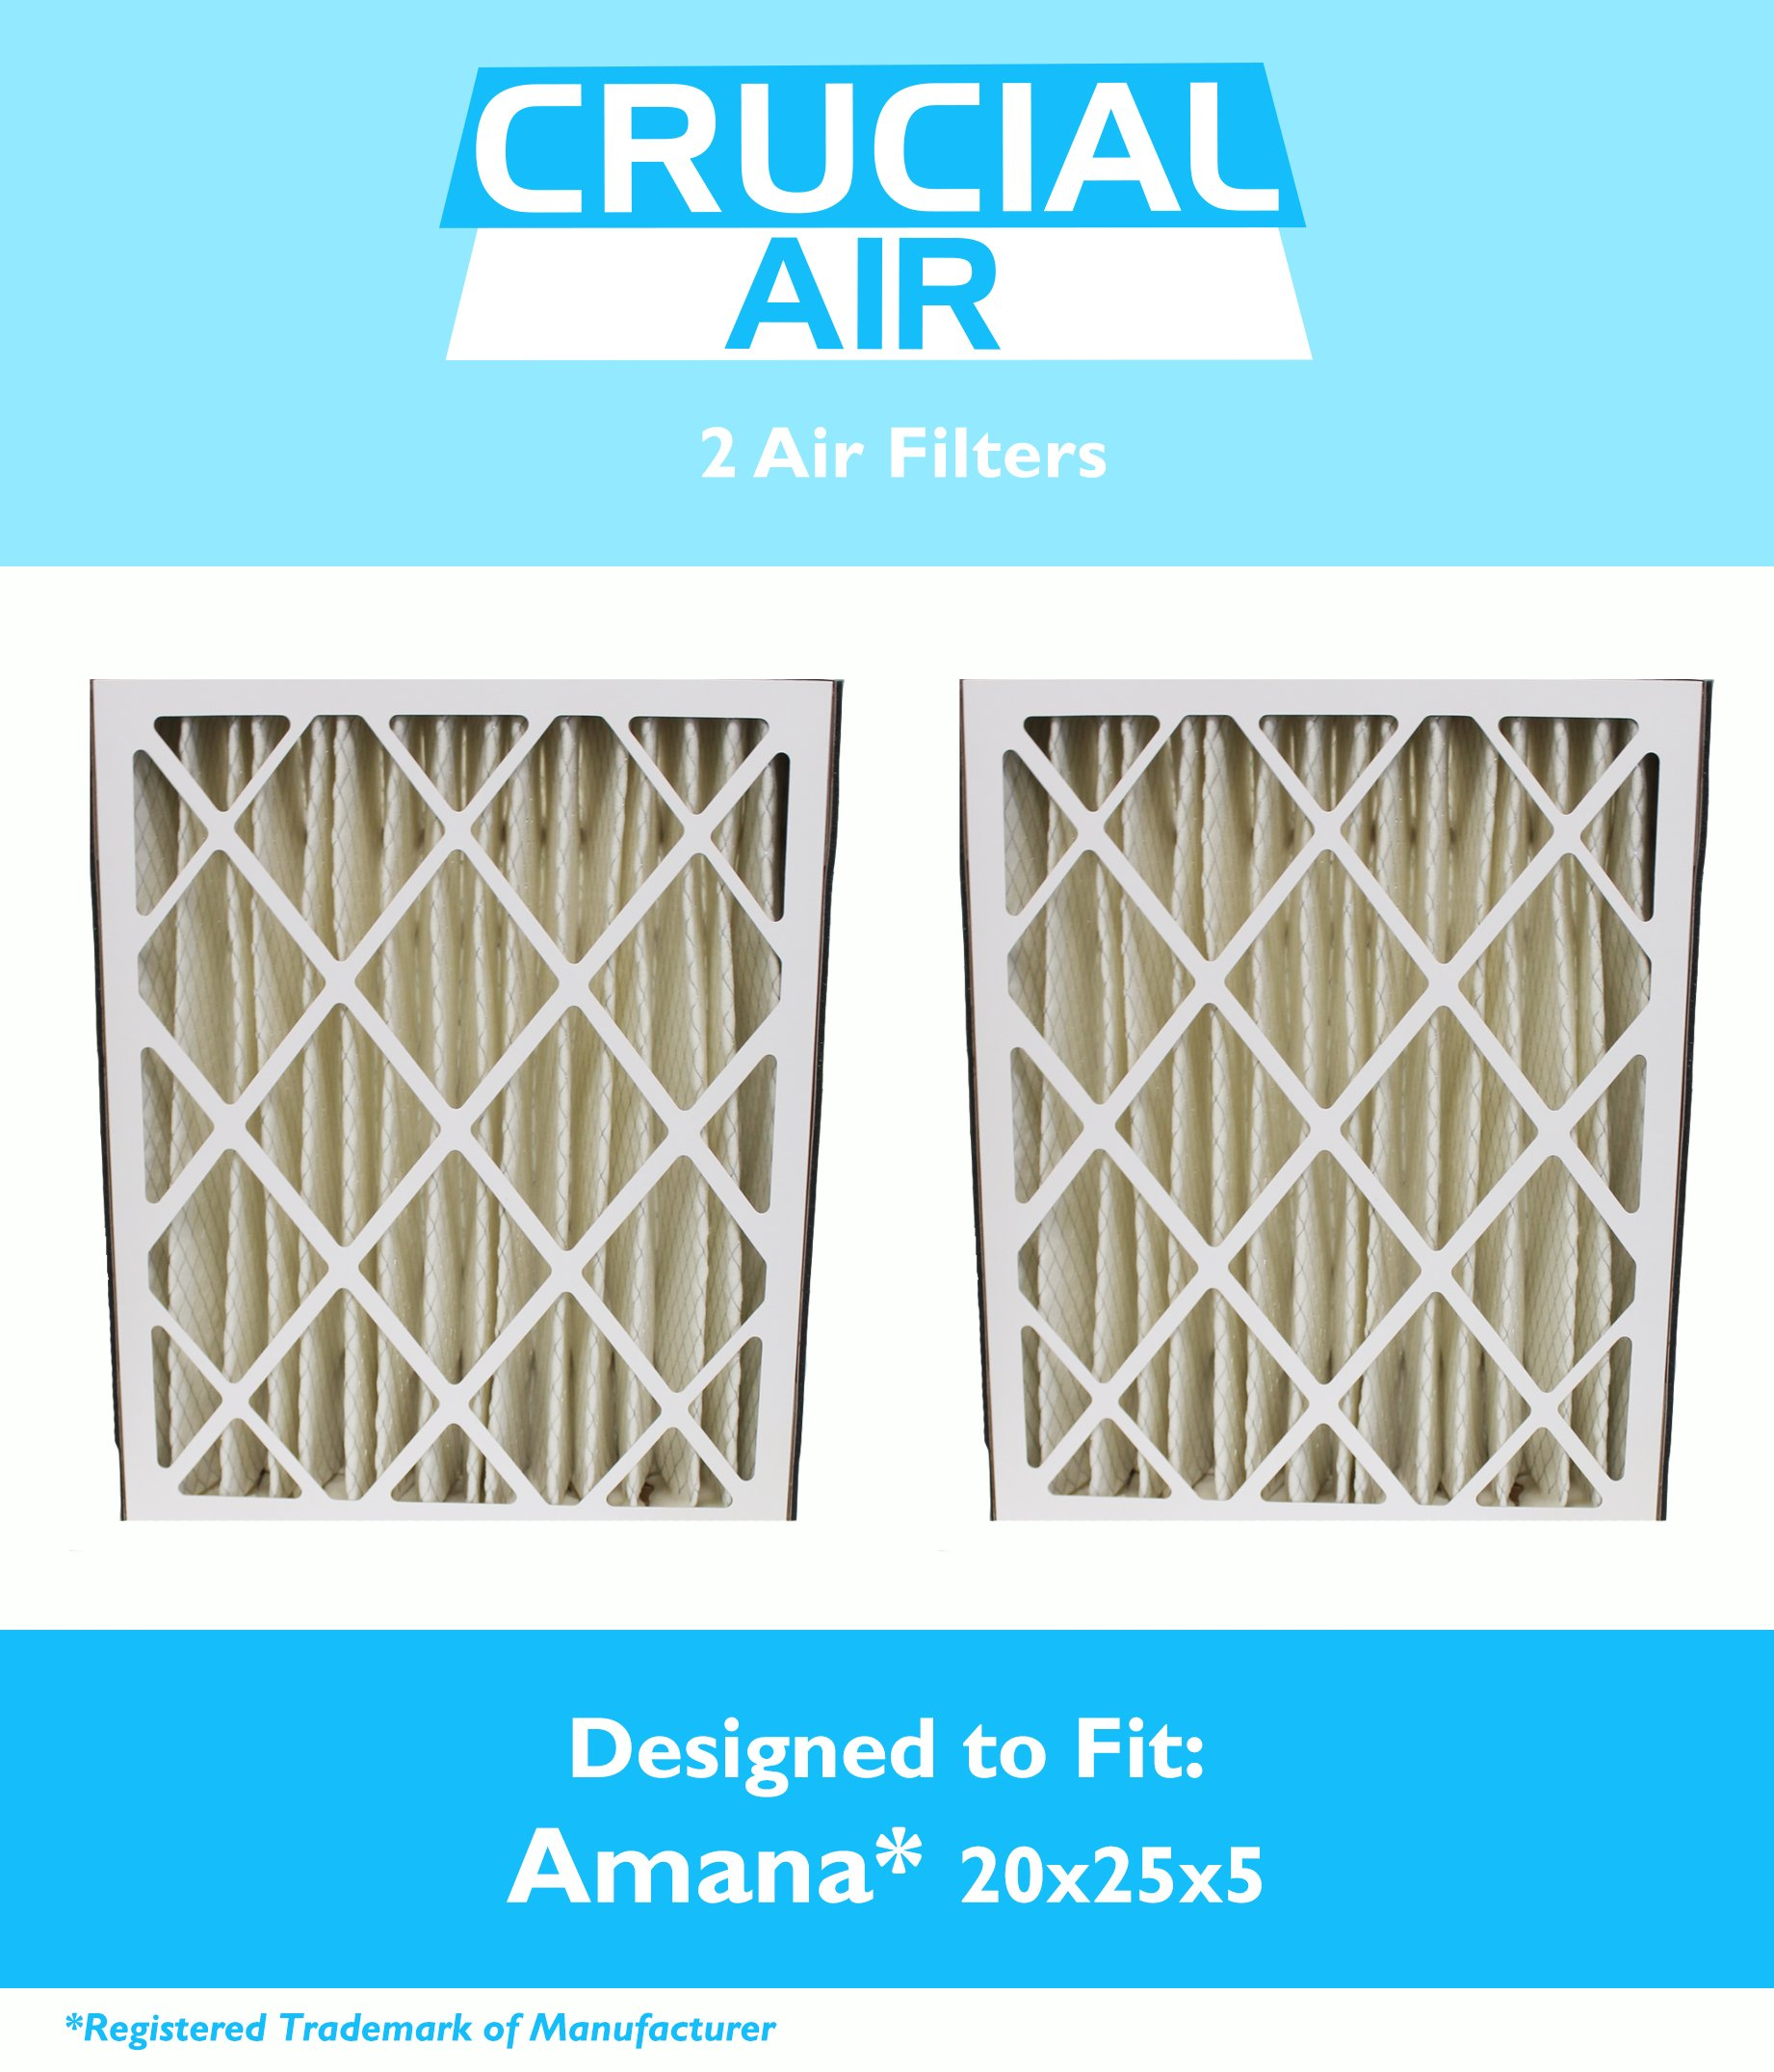 Think Crucial 2 Replacements Amana 20x25x5 MU2025 & M8-1056 Pleated Furnace Air Filter, MERV 8